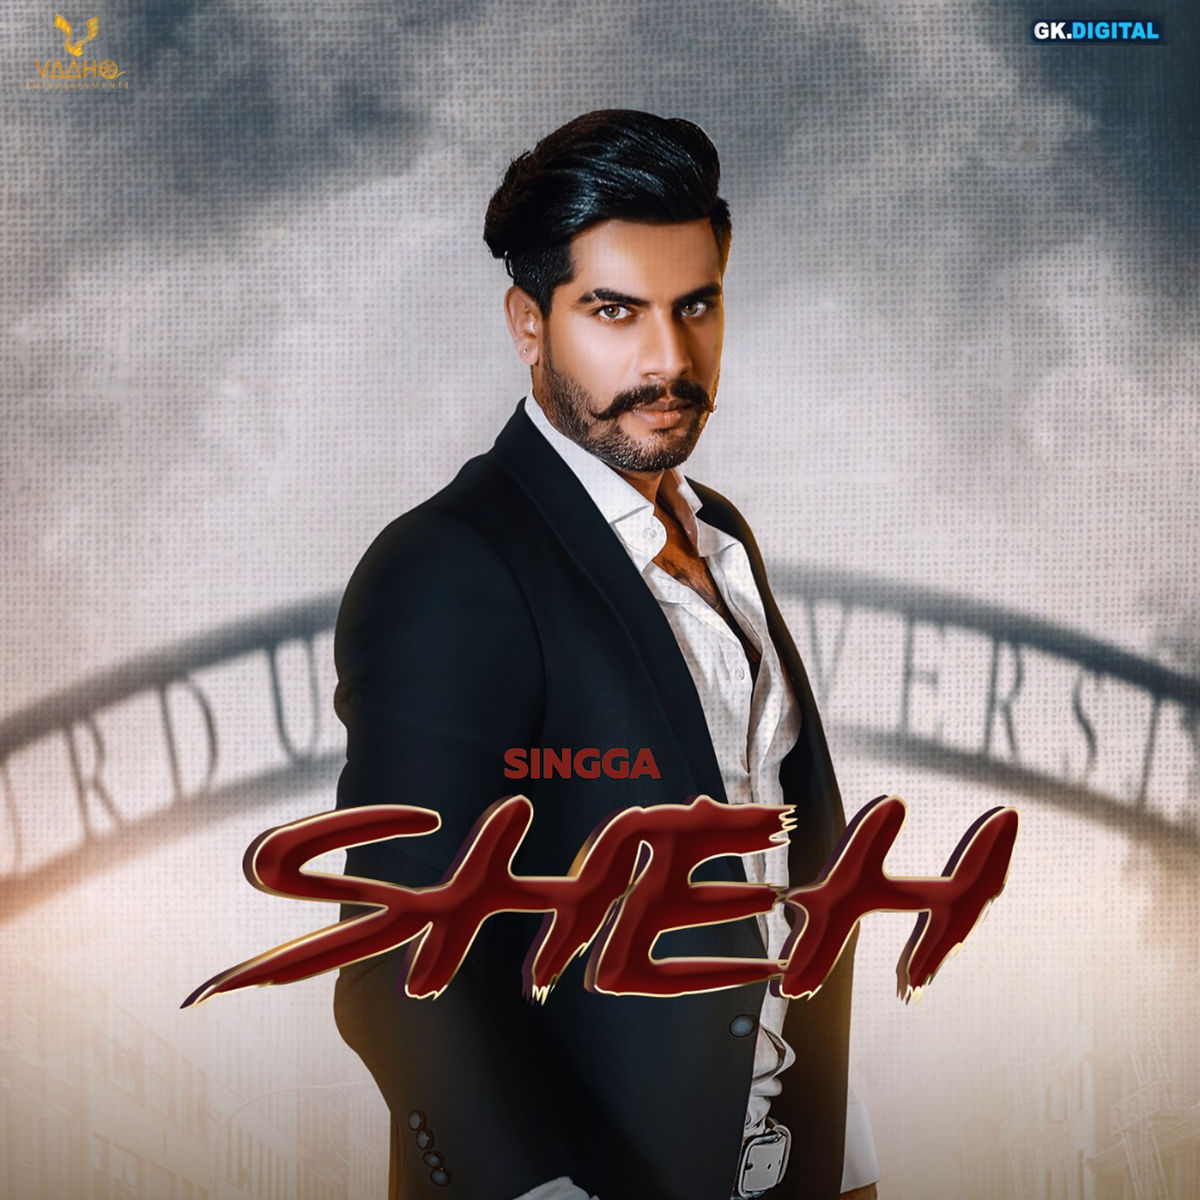 Sheh : Singga Ringtone Download | Ringtones Factory - Sheh - Single